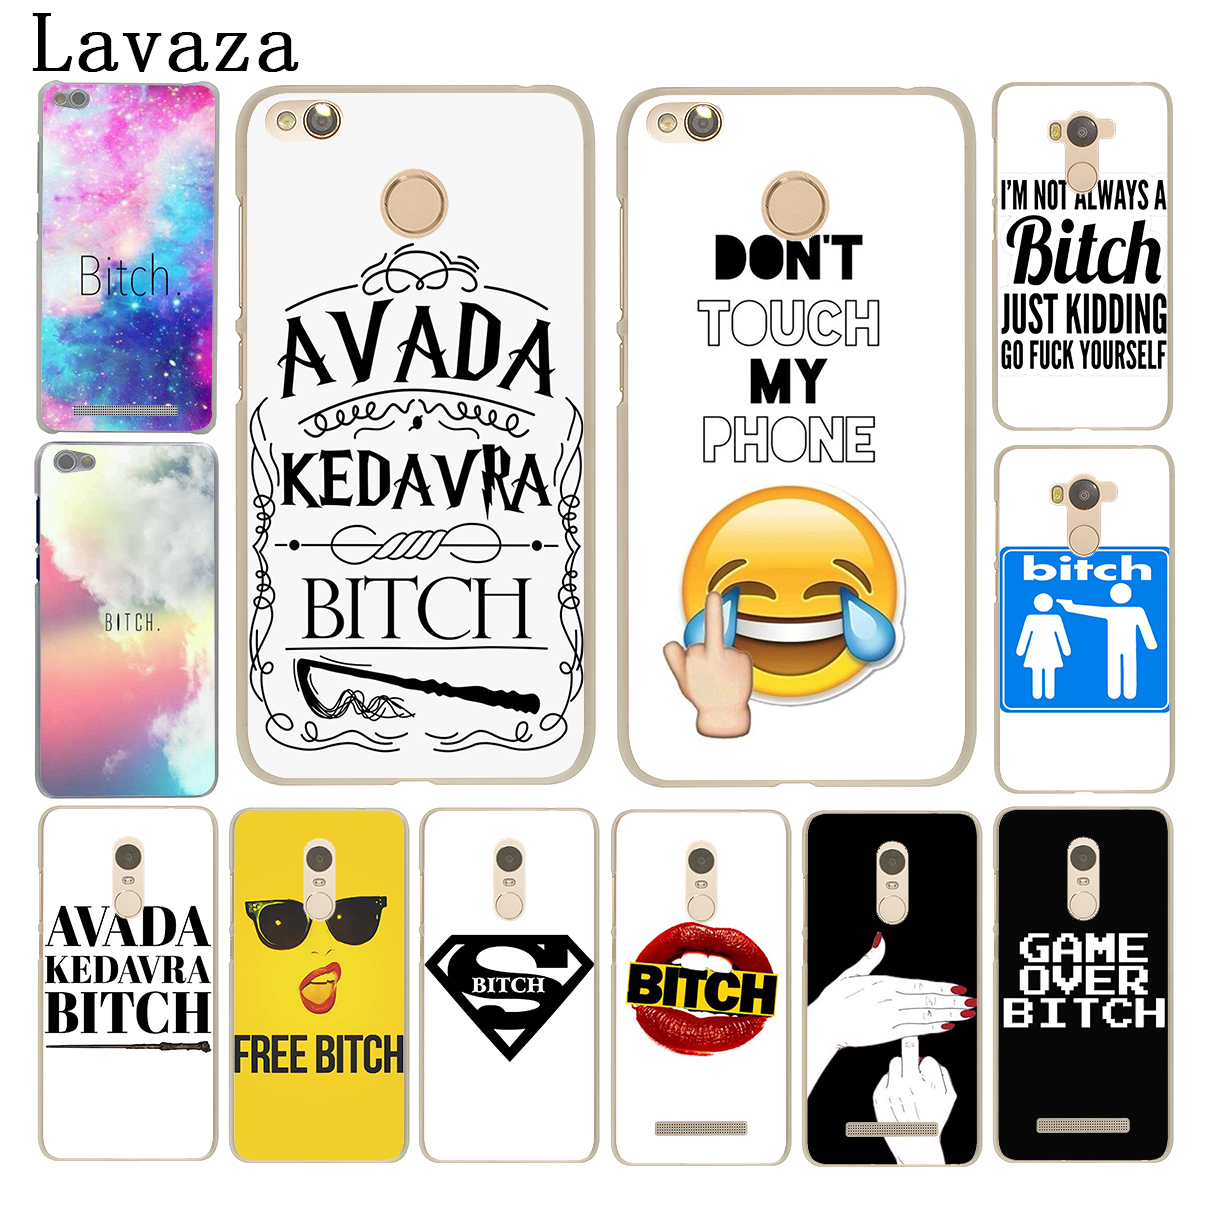 Lavaza Bitch mode on bitching Harry Potter Case for Xiaomi Mi 8 SE A1 6 5 5S 5X Mi8 MiA1 Redmi Note 4X 4A 4 Pro 5 Plus 5A Prime ...